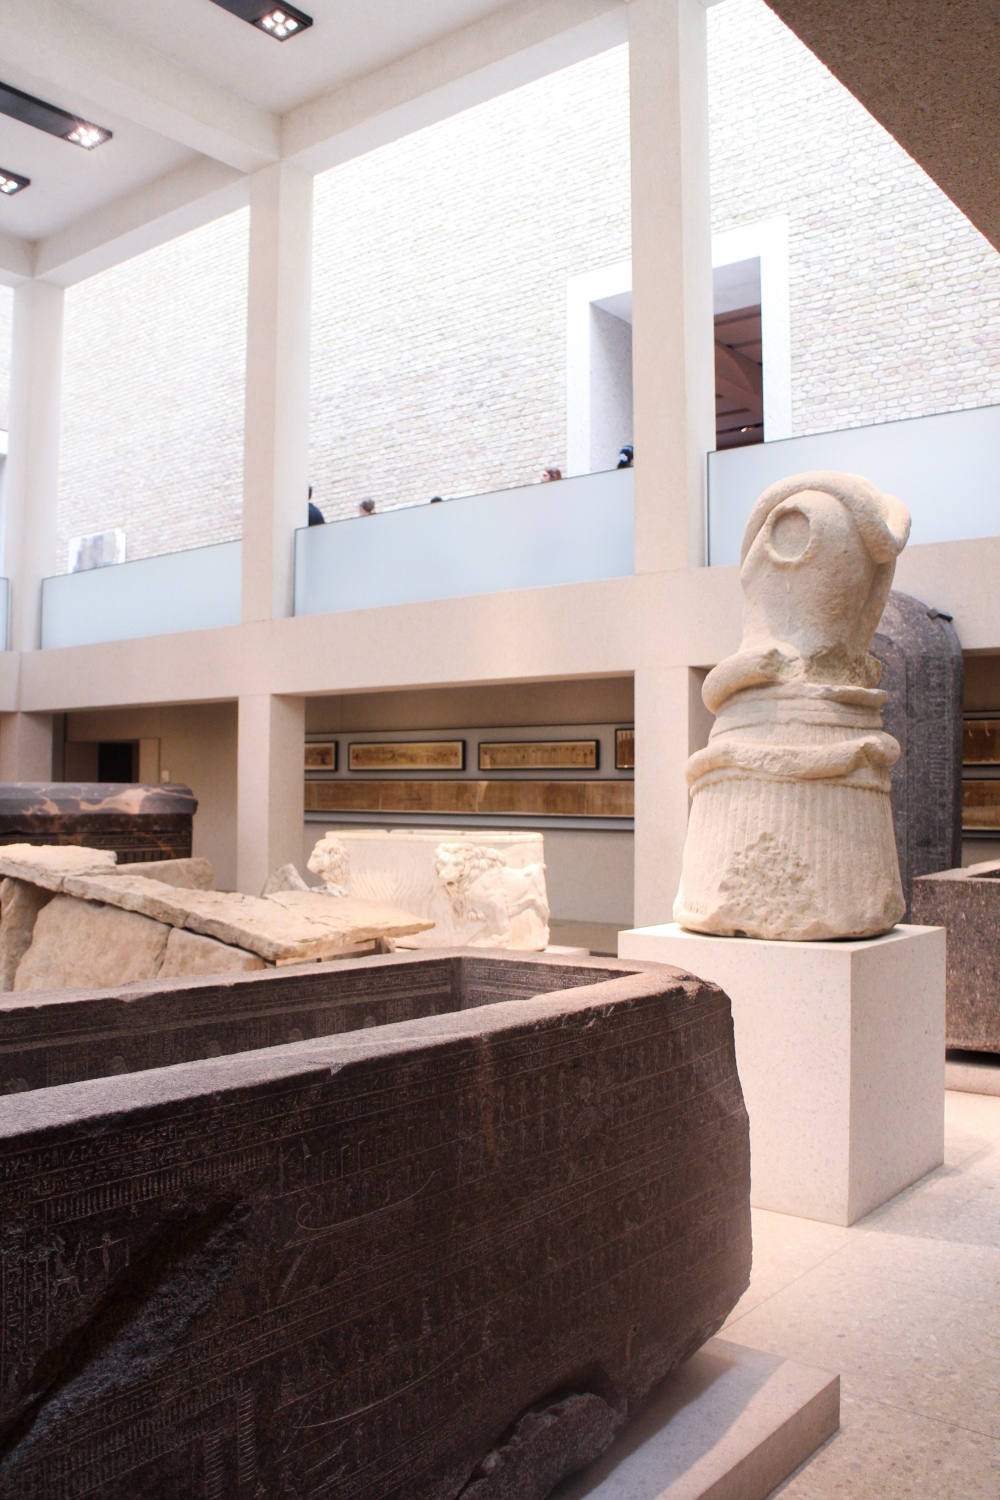 Ancient Egyptian sarcophaguses laid out in a museum